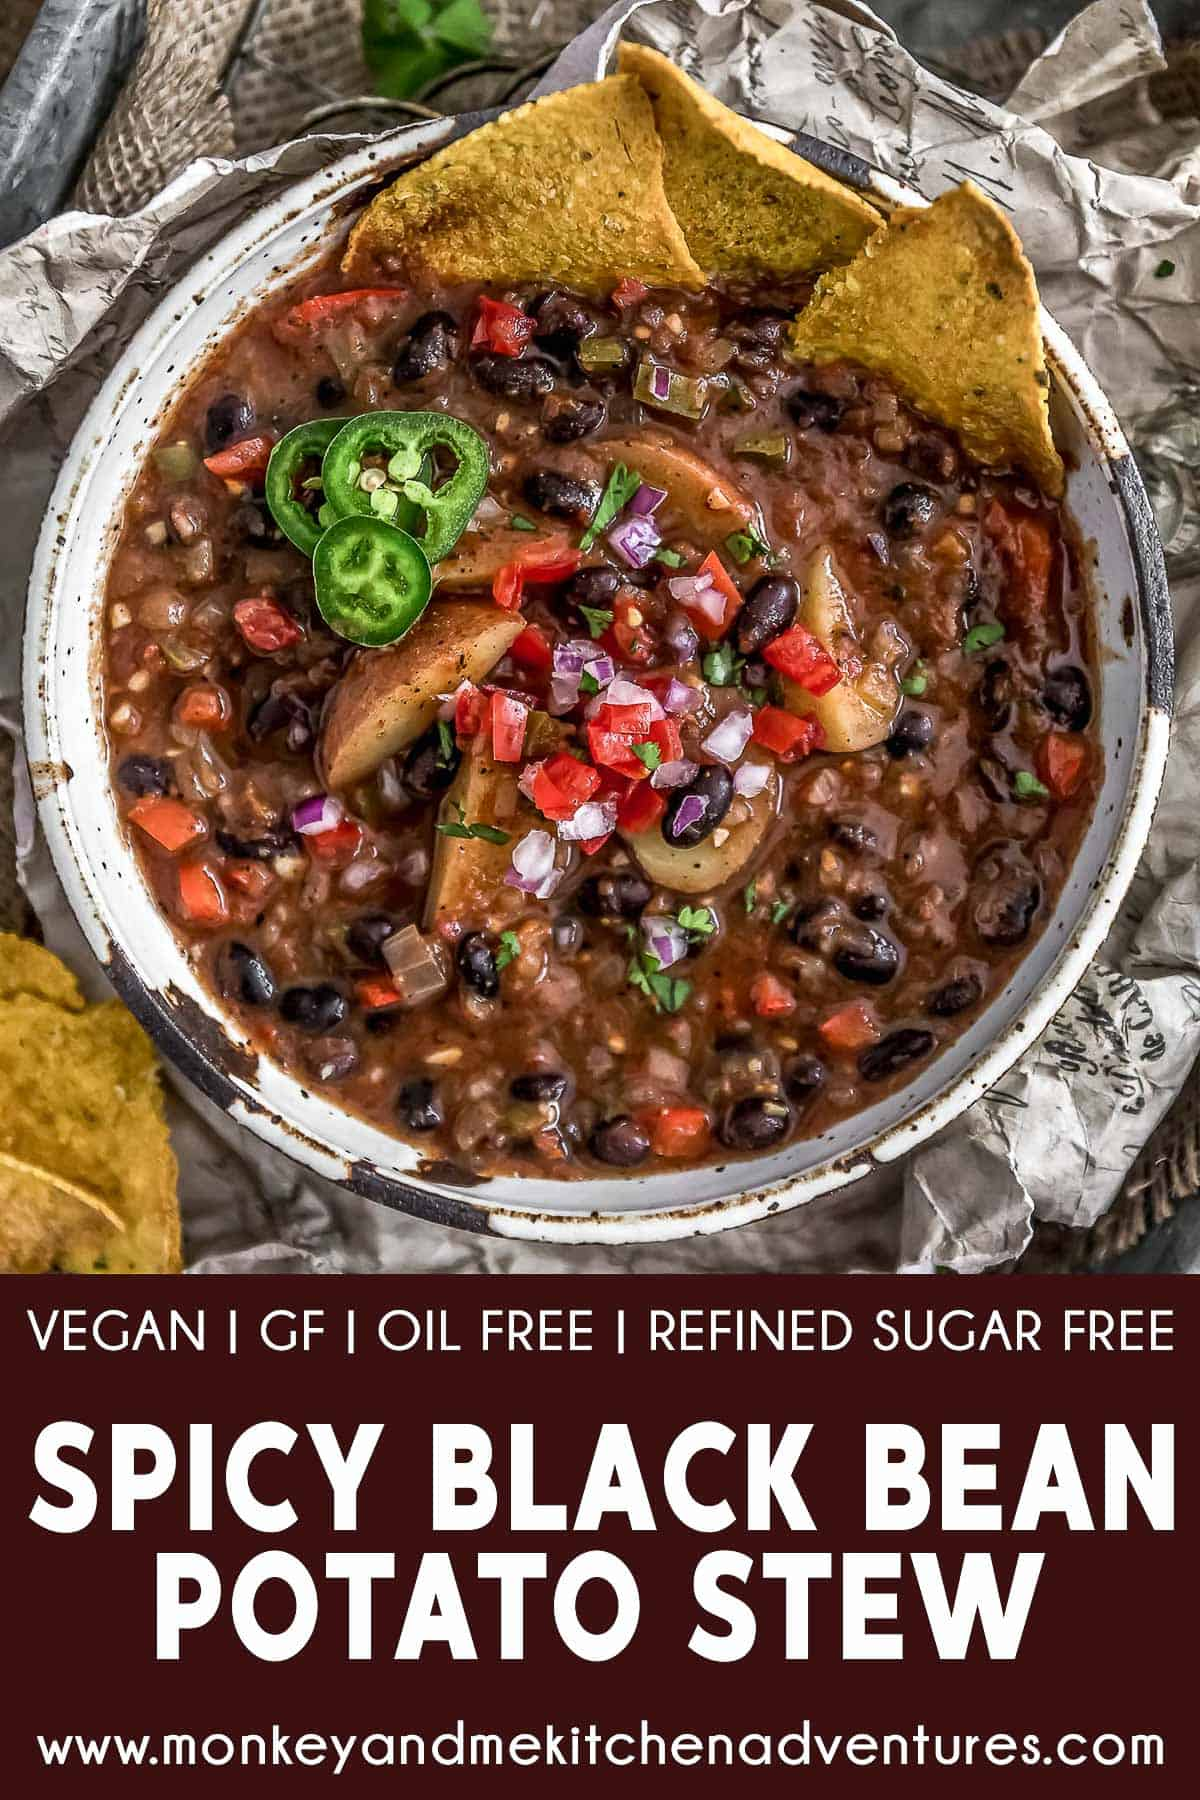 Spicy Black Bean Potato Stew with Text Description